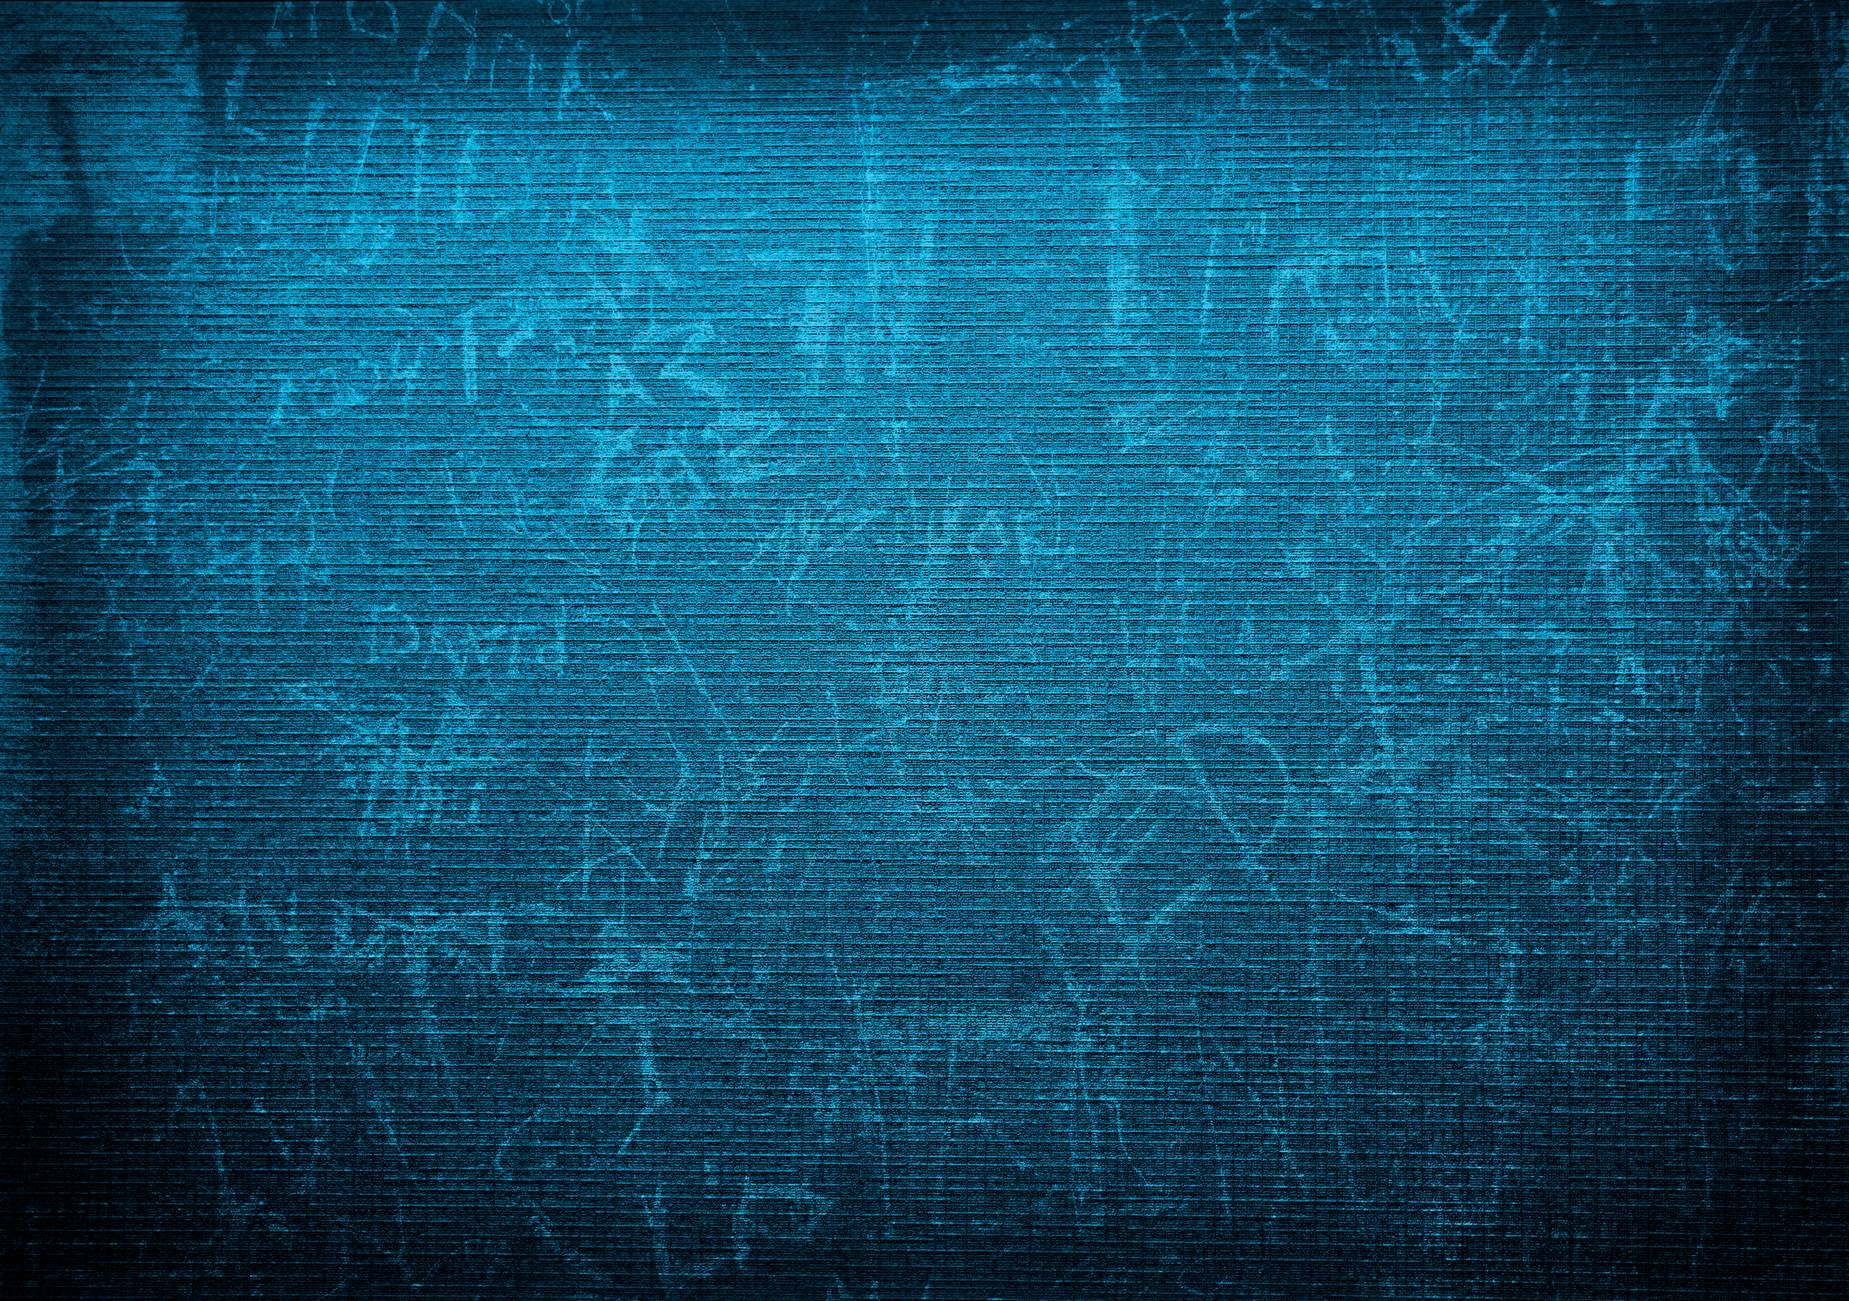 Scratched blue wall background texture photohdx for Dark blue wallpaper for walls